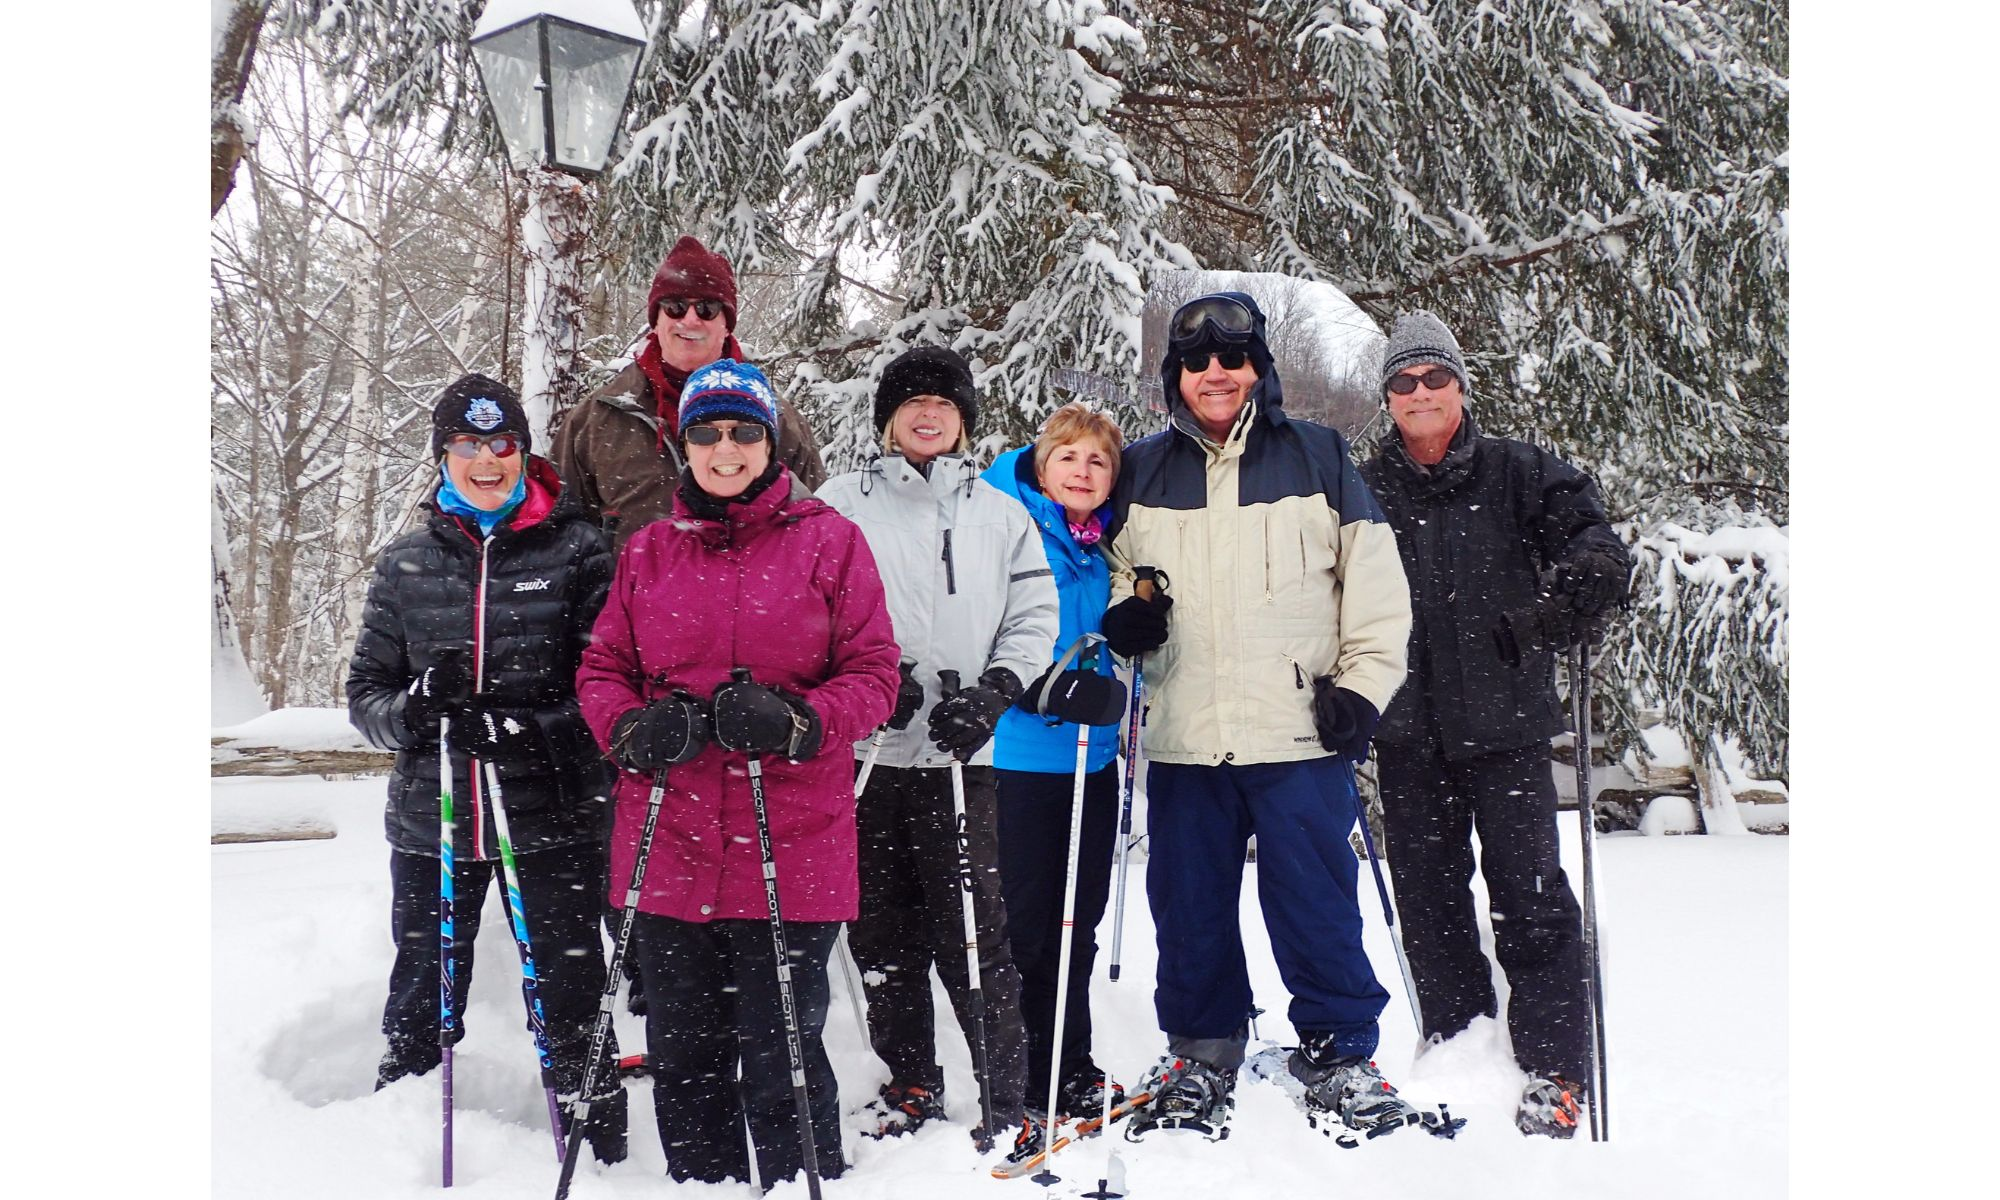 Snowshoeing Feb 7